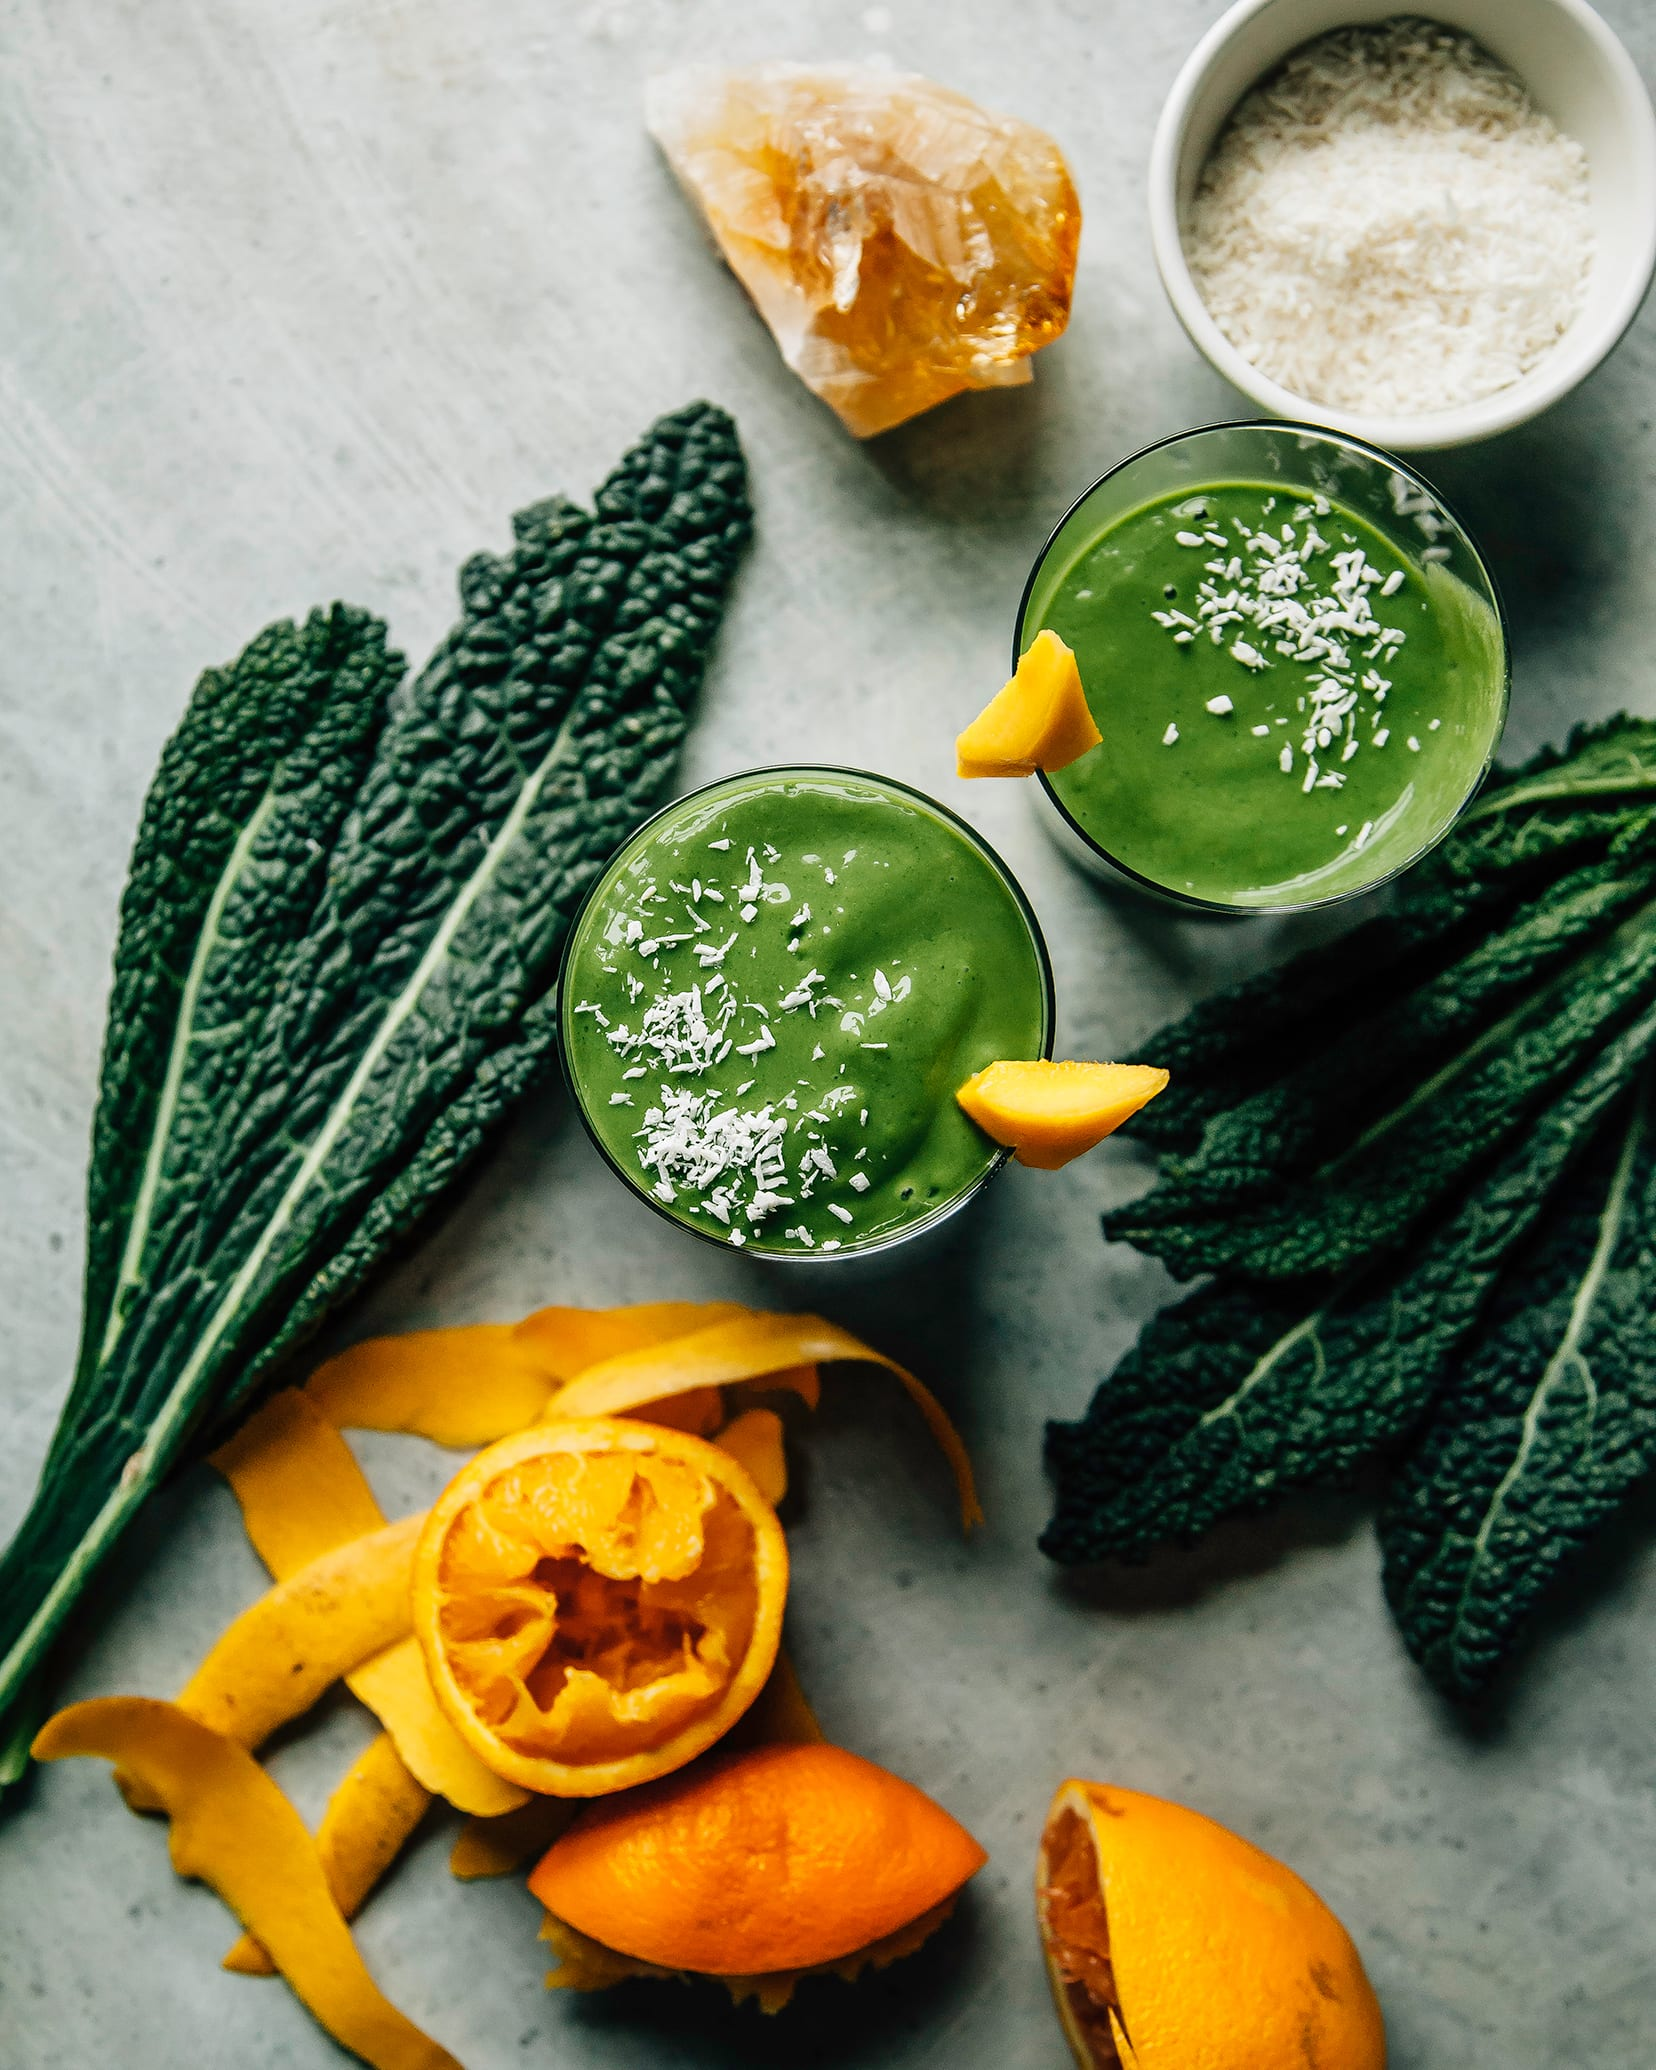 Overhead shot of 2 deep green smoothies in clear glasses on a light blue background. Kale leaves and squeezed oranges are nearby. The smoothies are garnished with shredded coconut and a piece of mango is perched on the rim of the glasses.